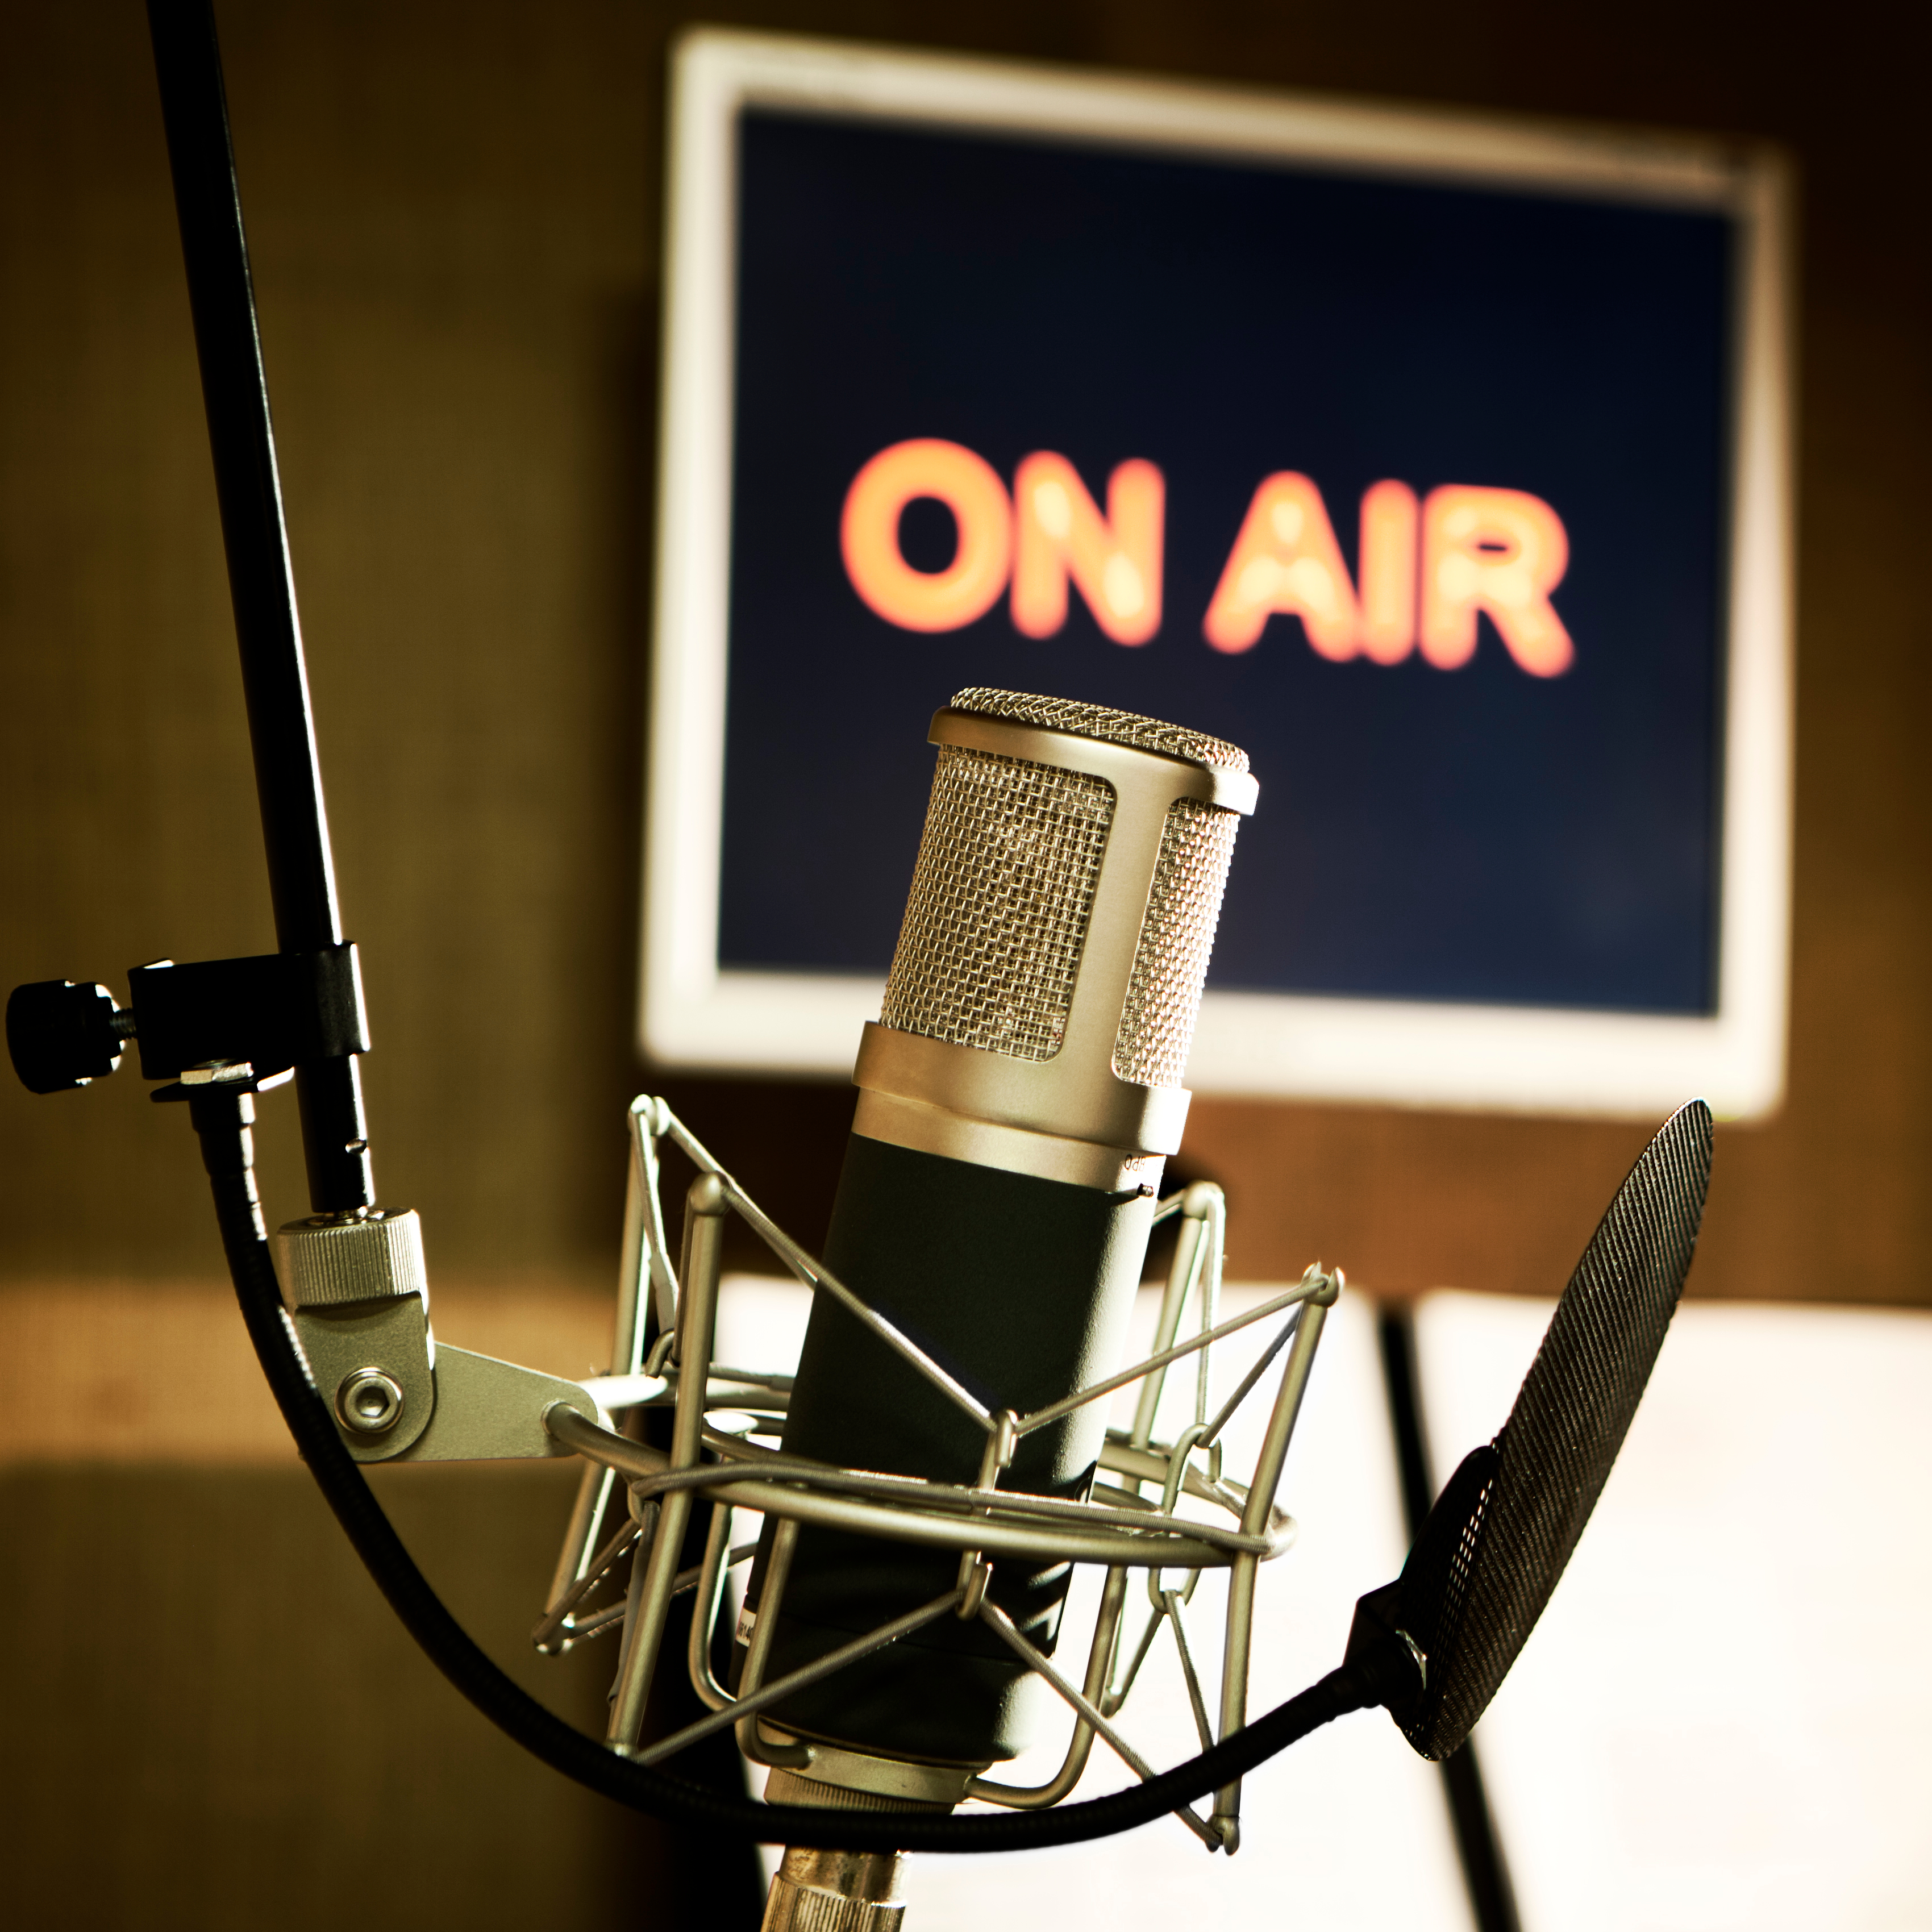 Learn how to Advertise on Sirius XM   advertise on dr laura   How to Advertise on SiriusXM